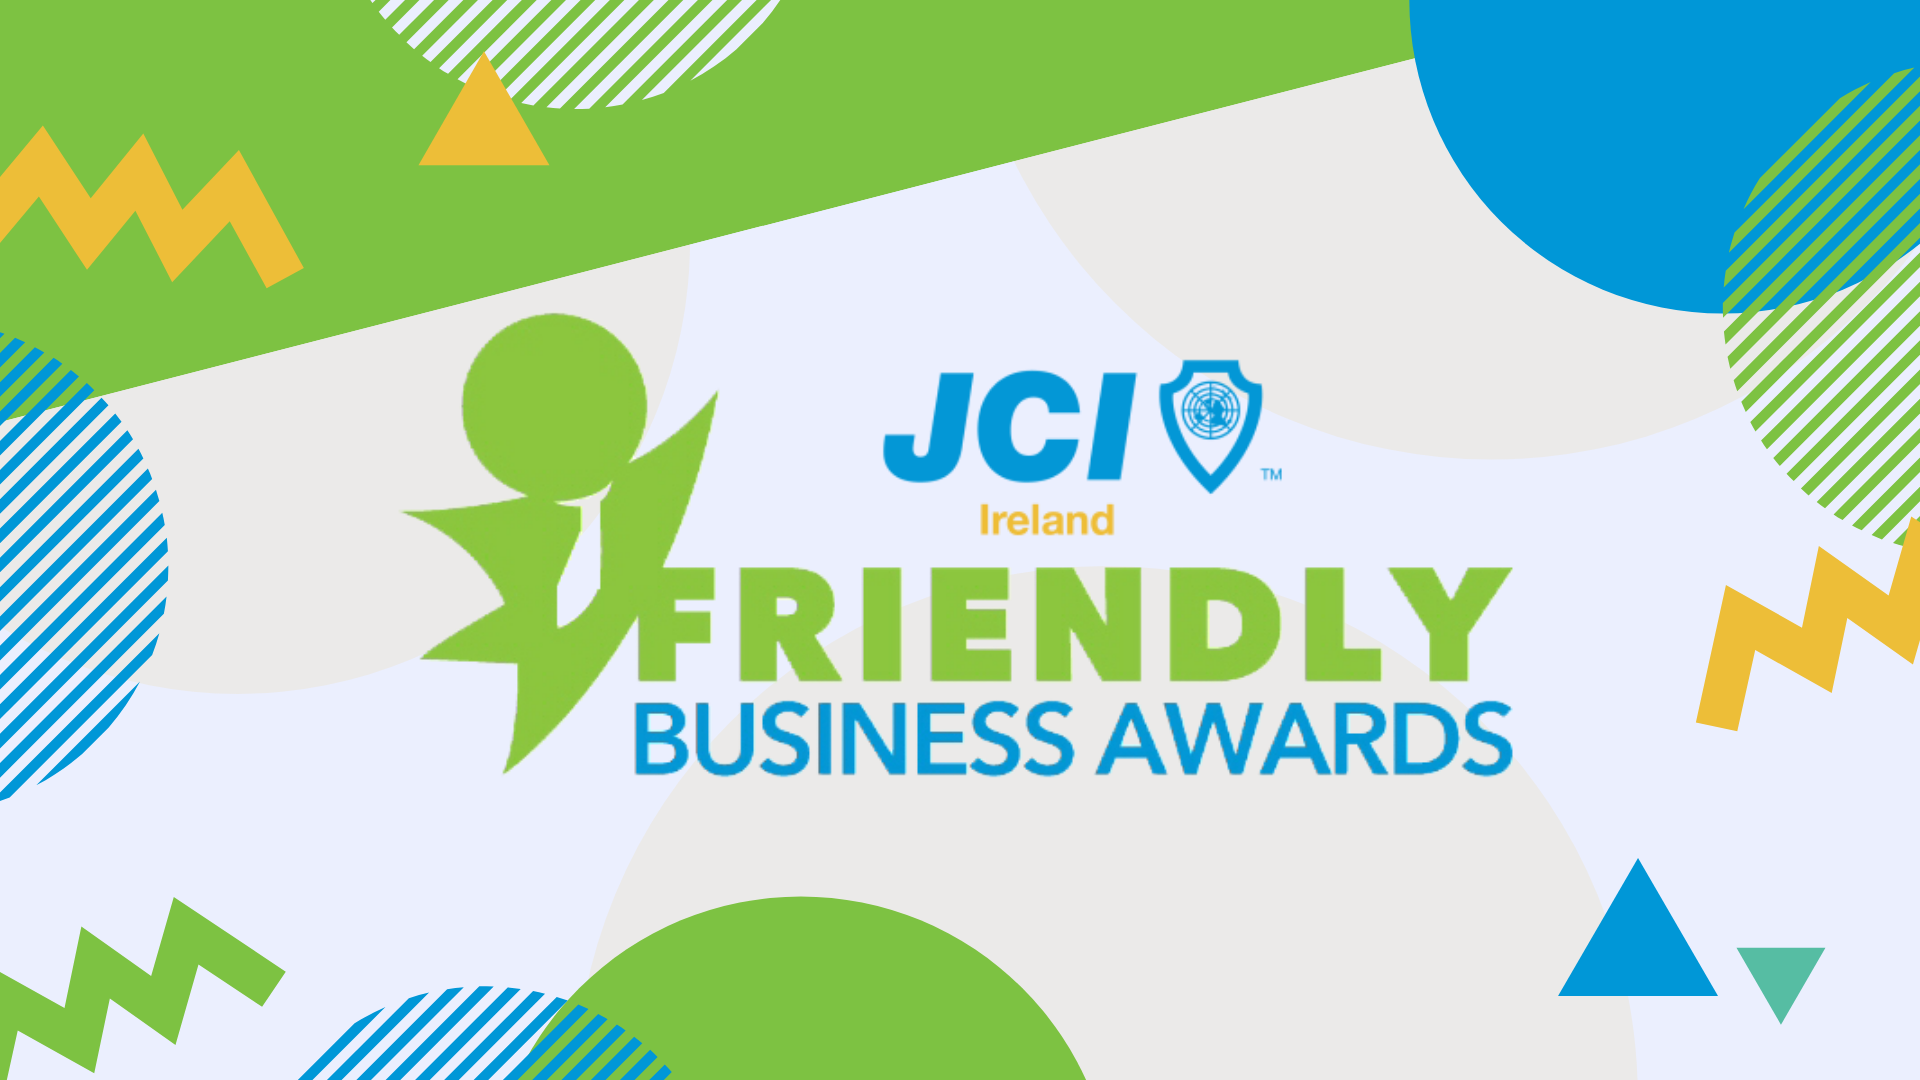 Public Voting is open for Friendly Business Awards